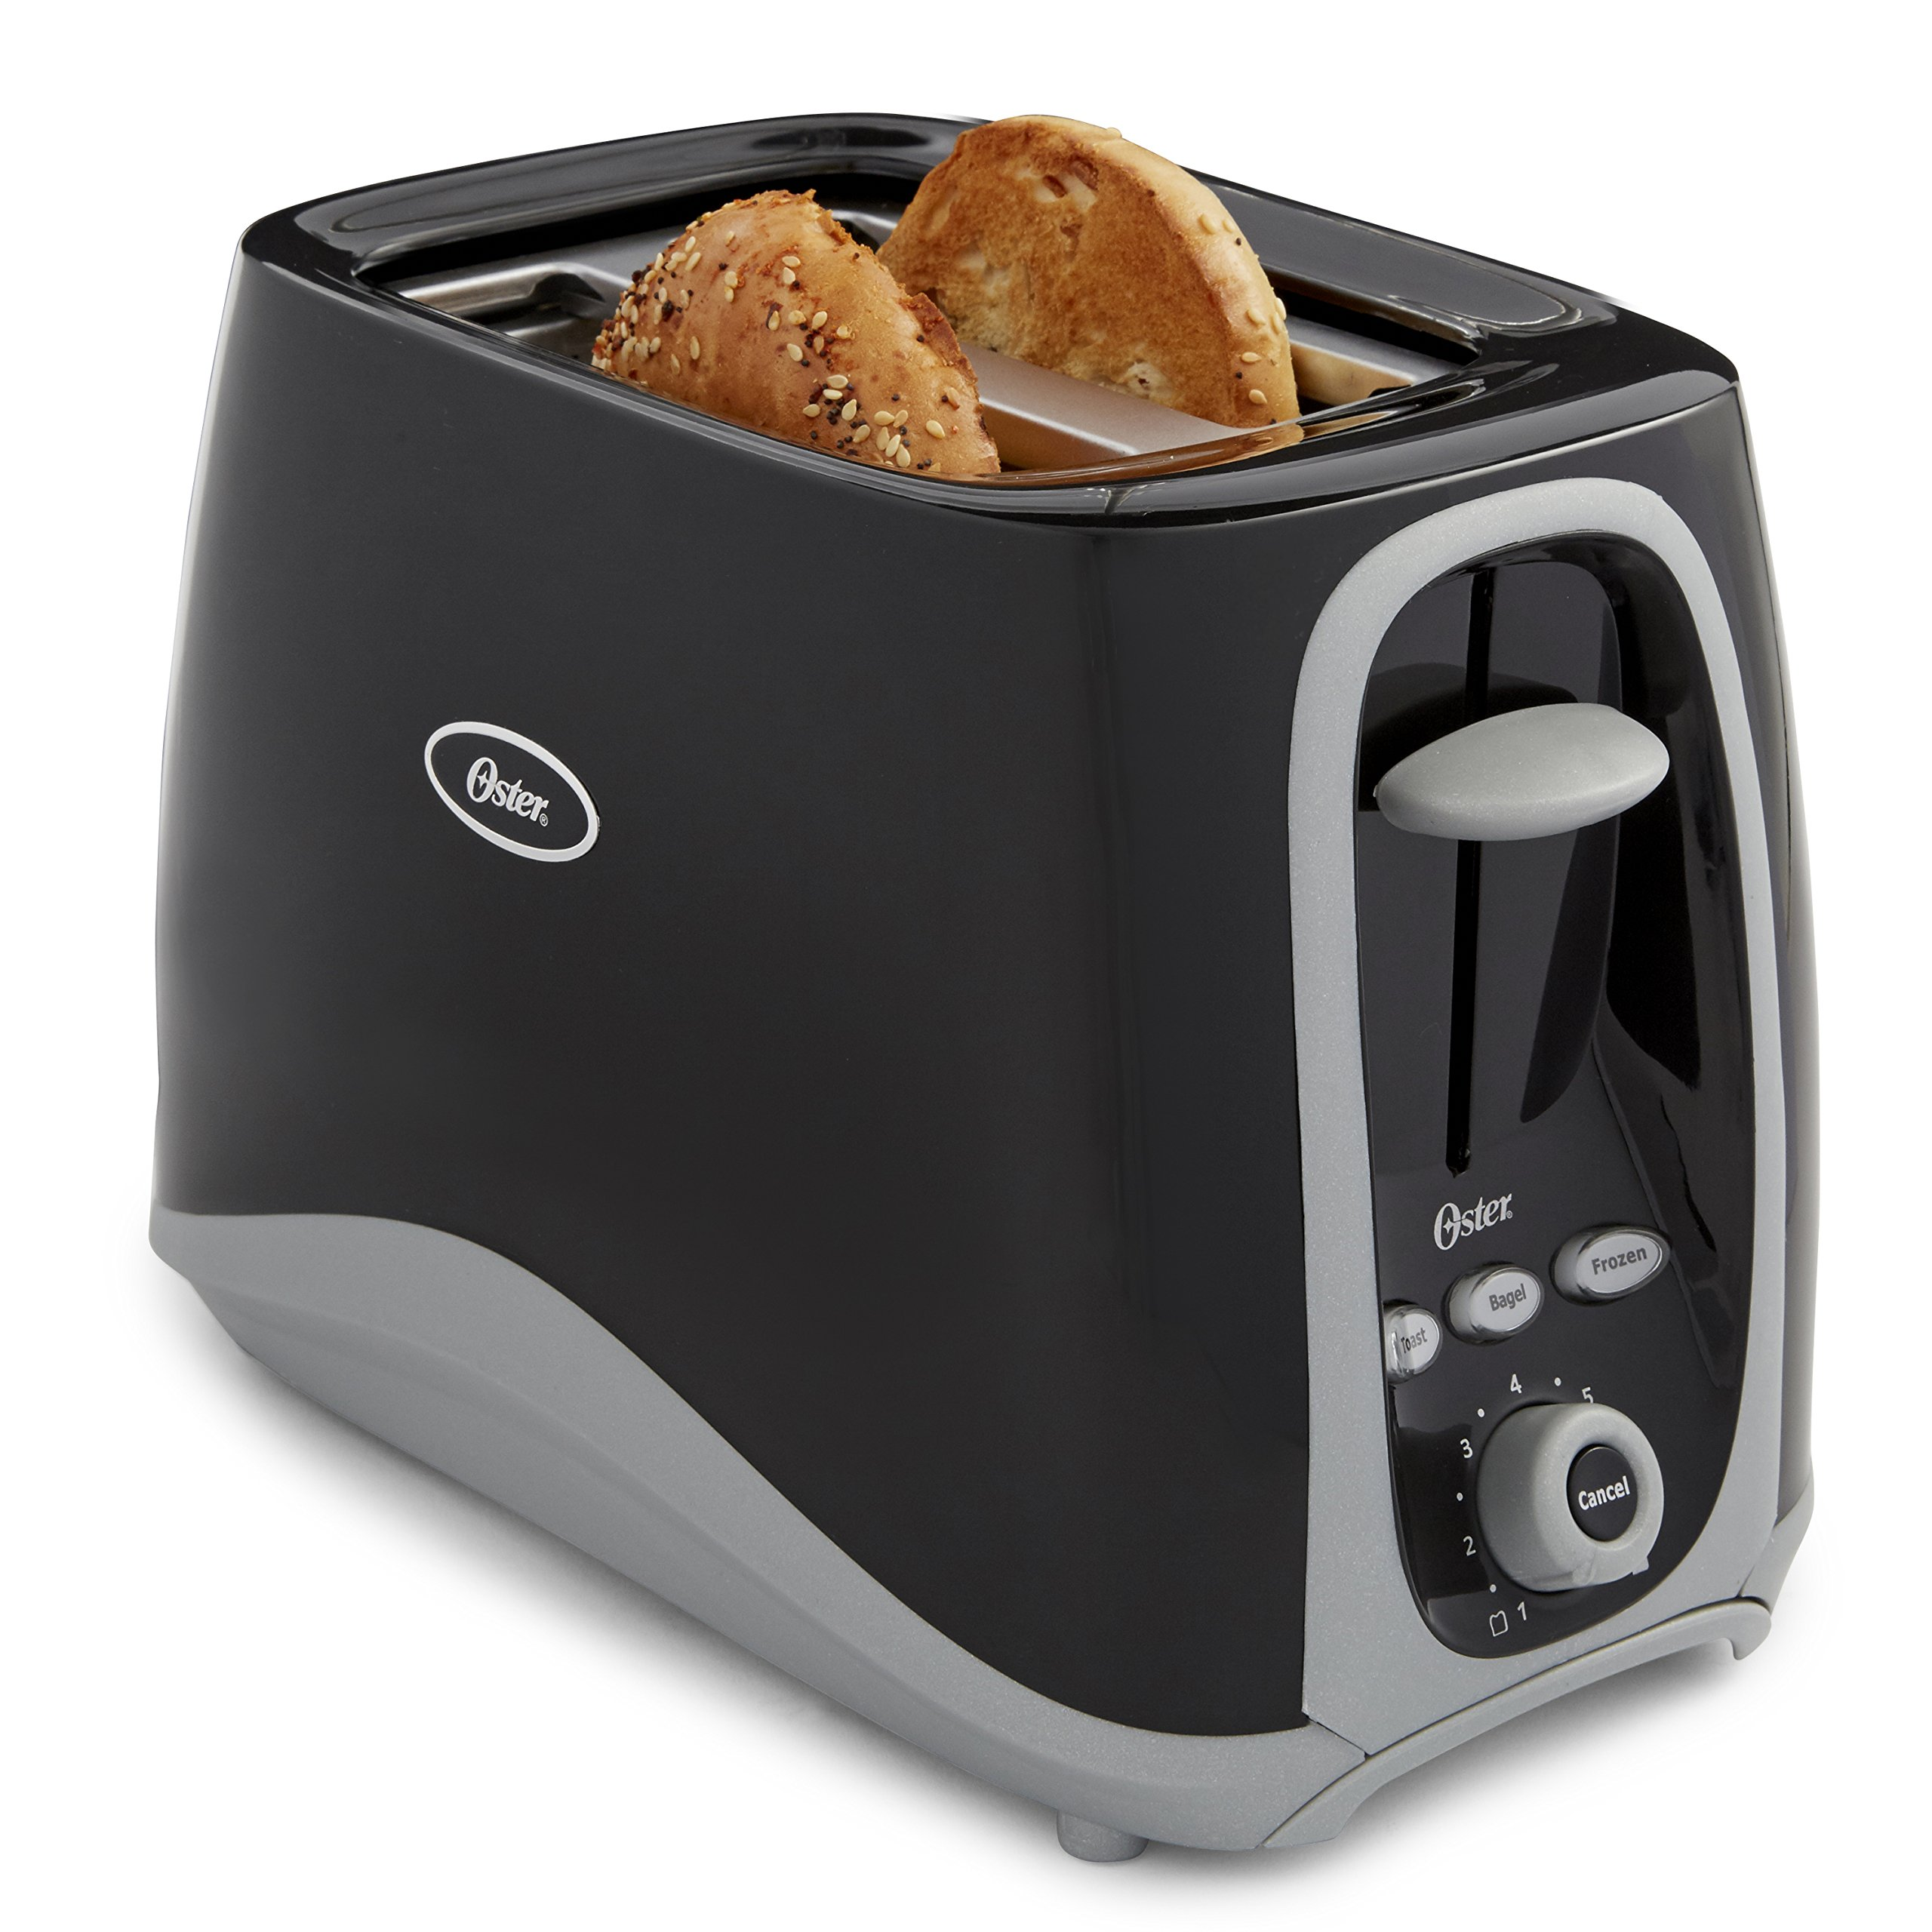 Oster 2-Slice Toaster, Black (006332-000-000) by Oster